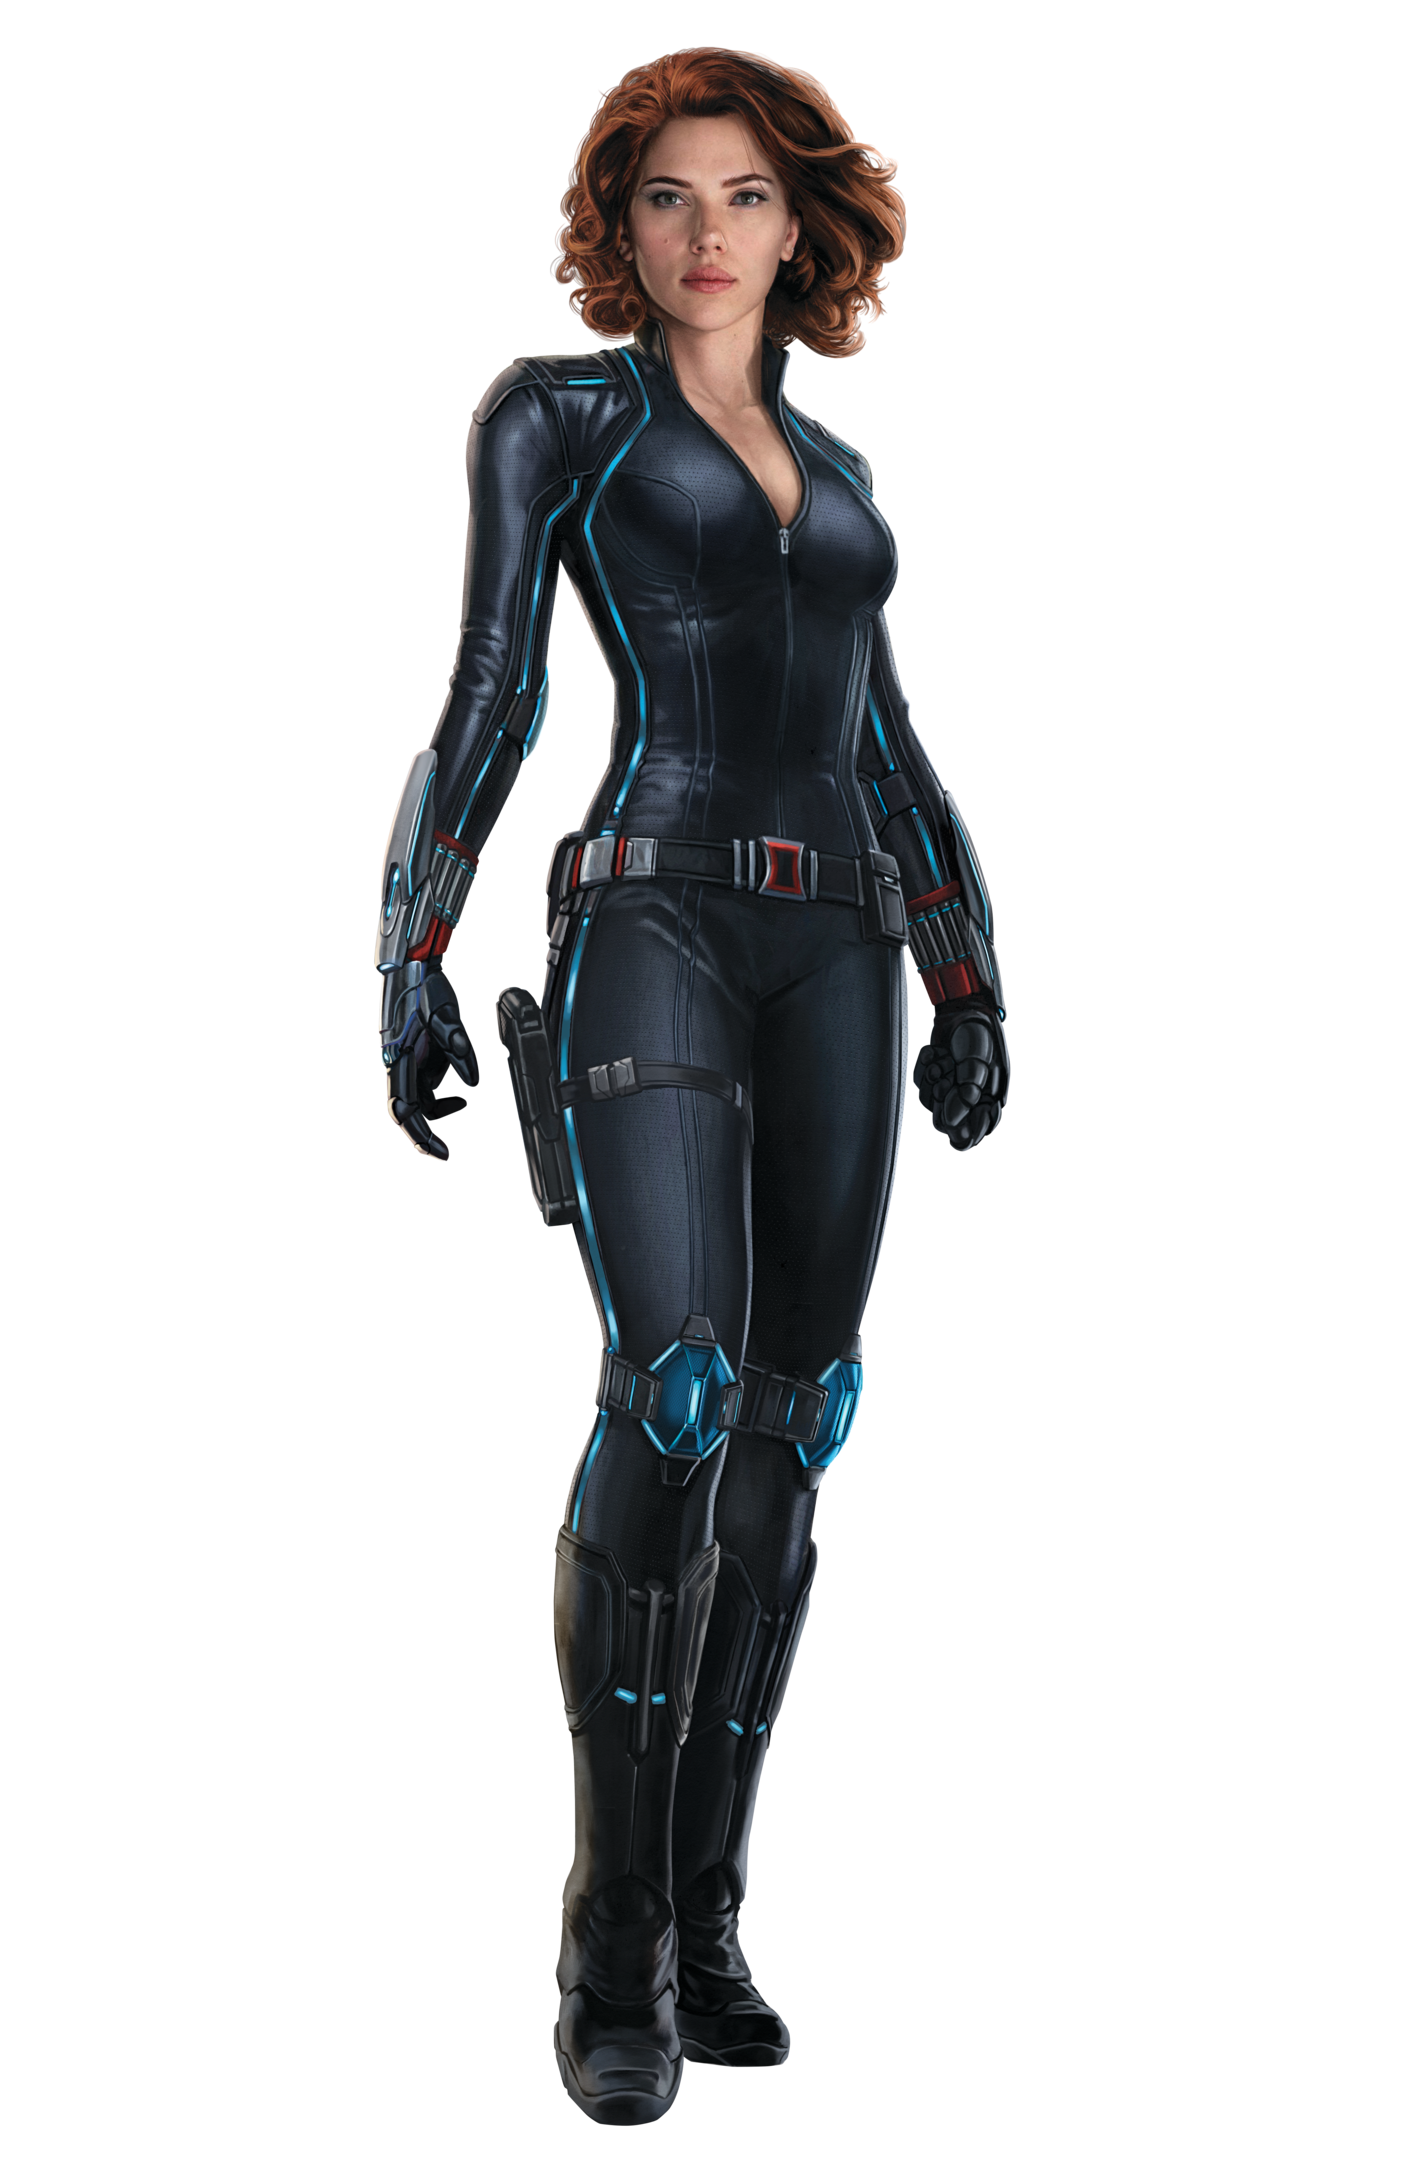 Black Widow PNG - 27811